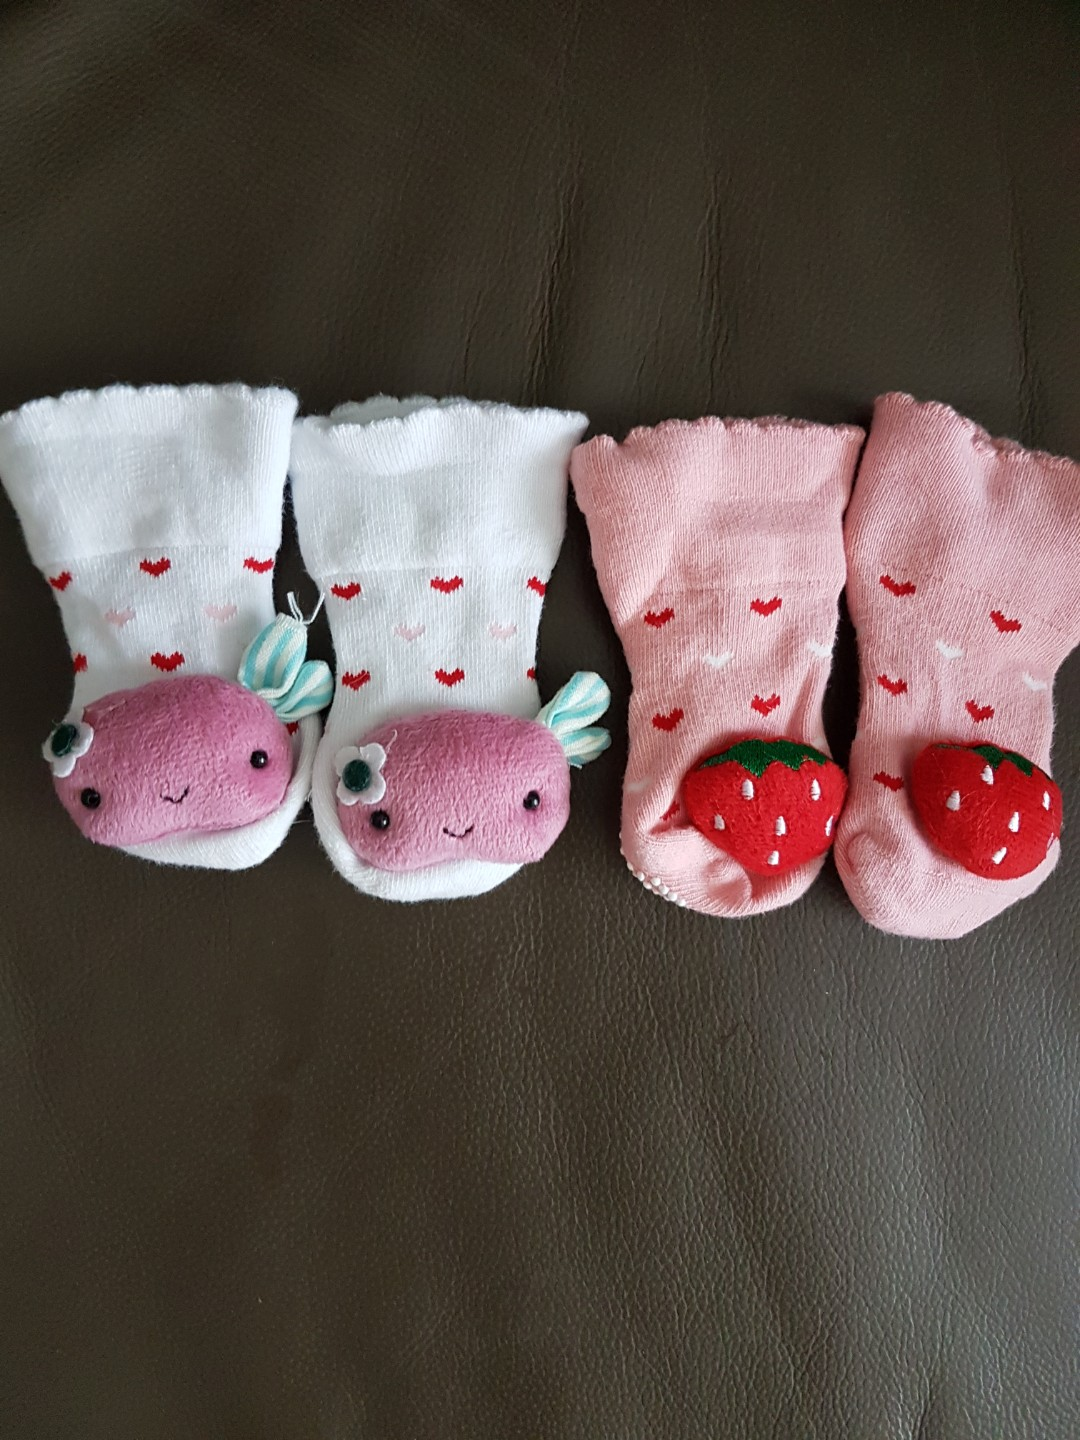 0393026adc BN Baby socks with cute design x 2, Babies & Kids, Babies Apparel on ...